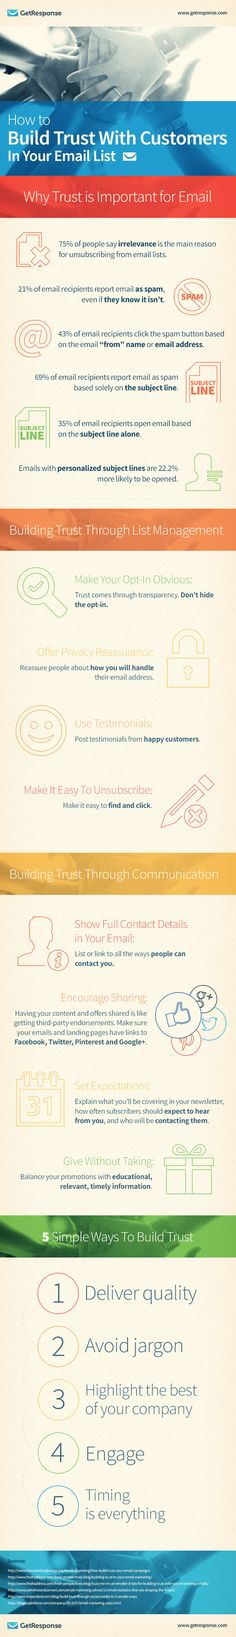 How to Build Trust with Customers in Your Email List